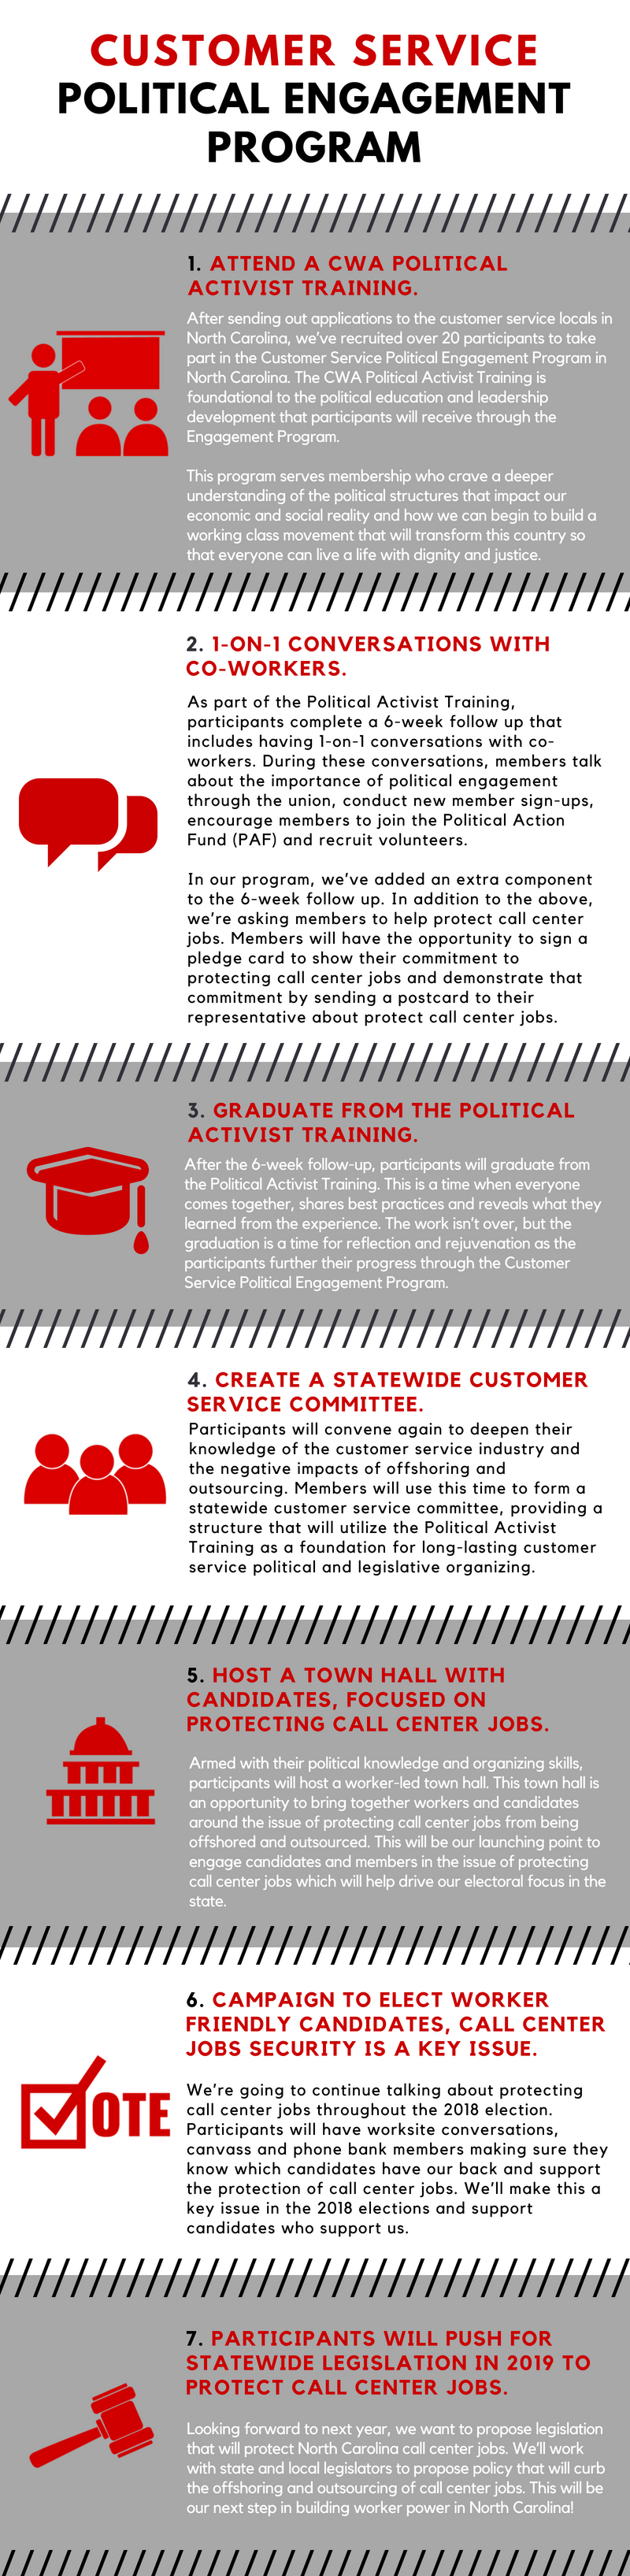 Customer Service Political Engagement Infographic